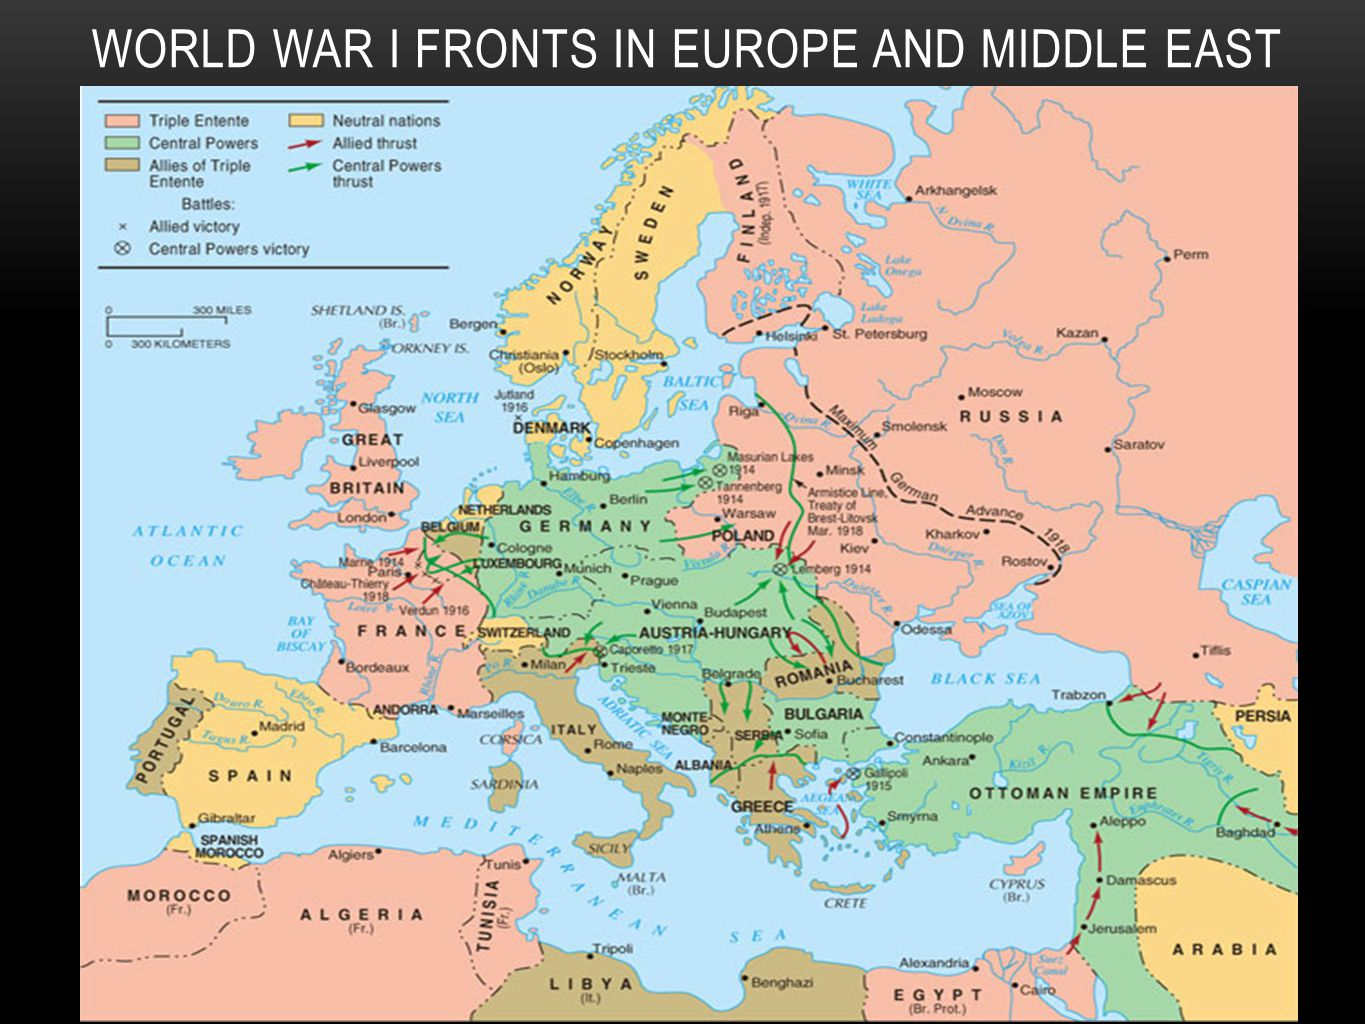 World War I Fronts in Europe and Middle East